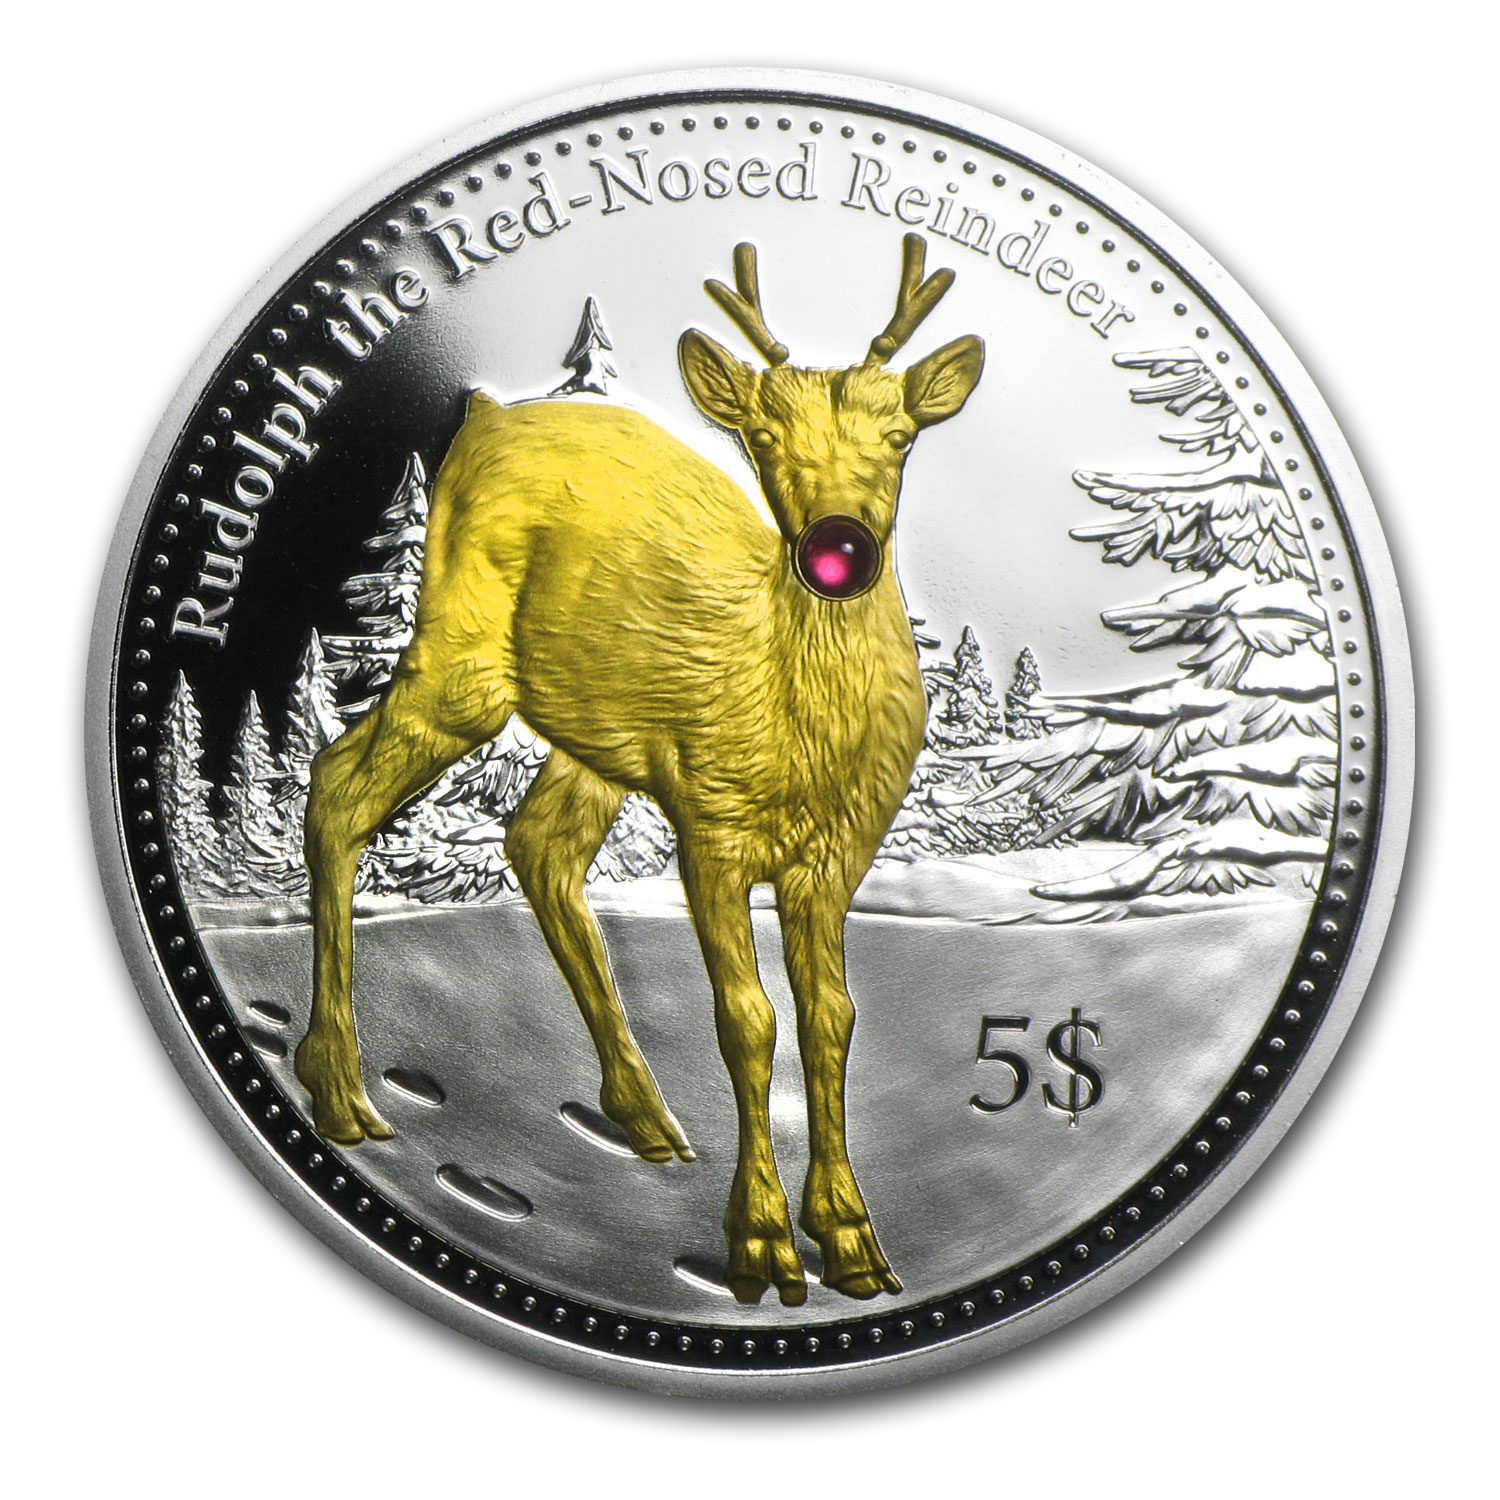 2014 Christmas Island Proof Silver Rudolph the Red-Nosed Reindeer